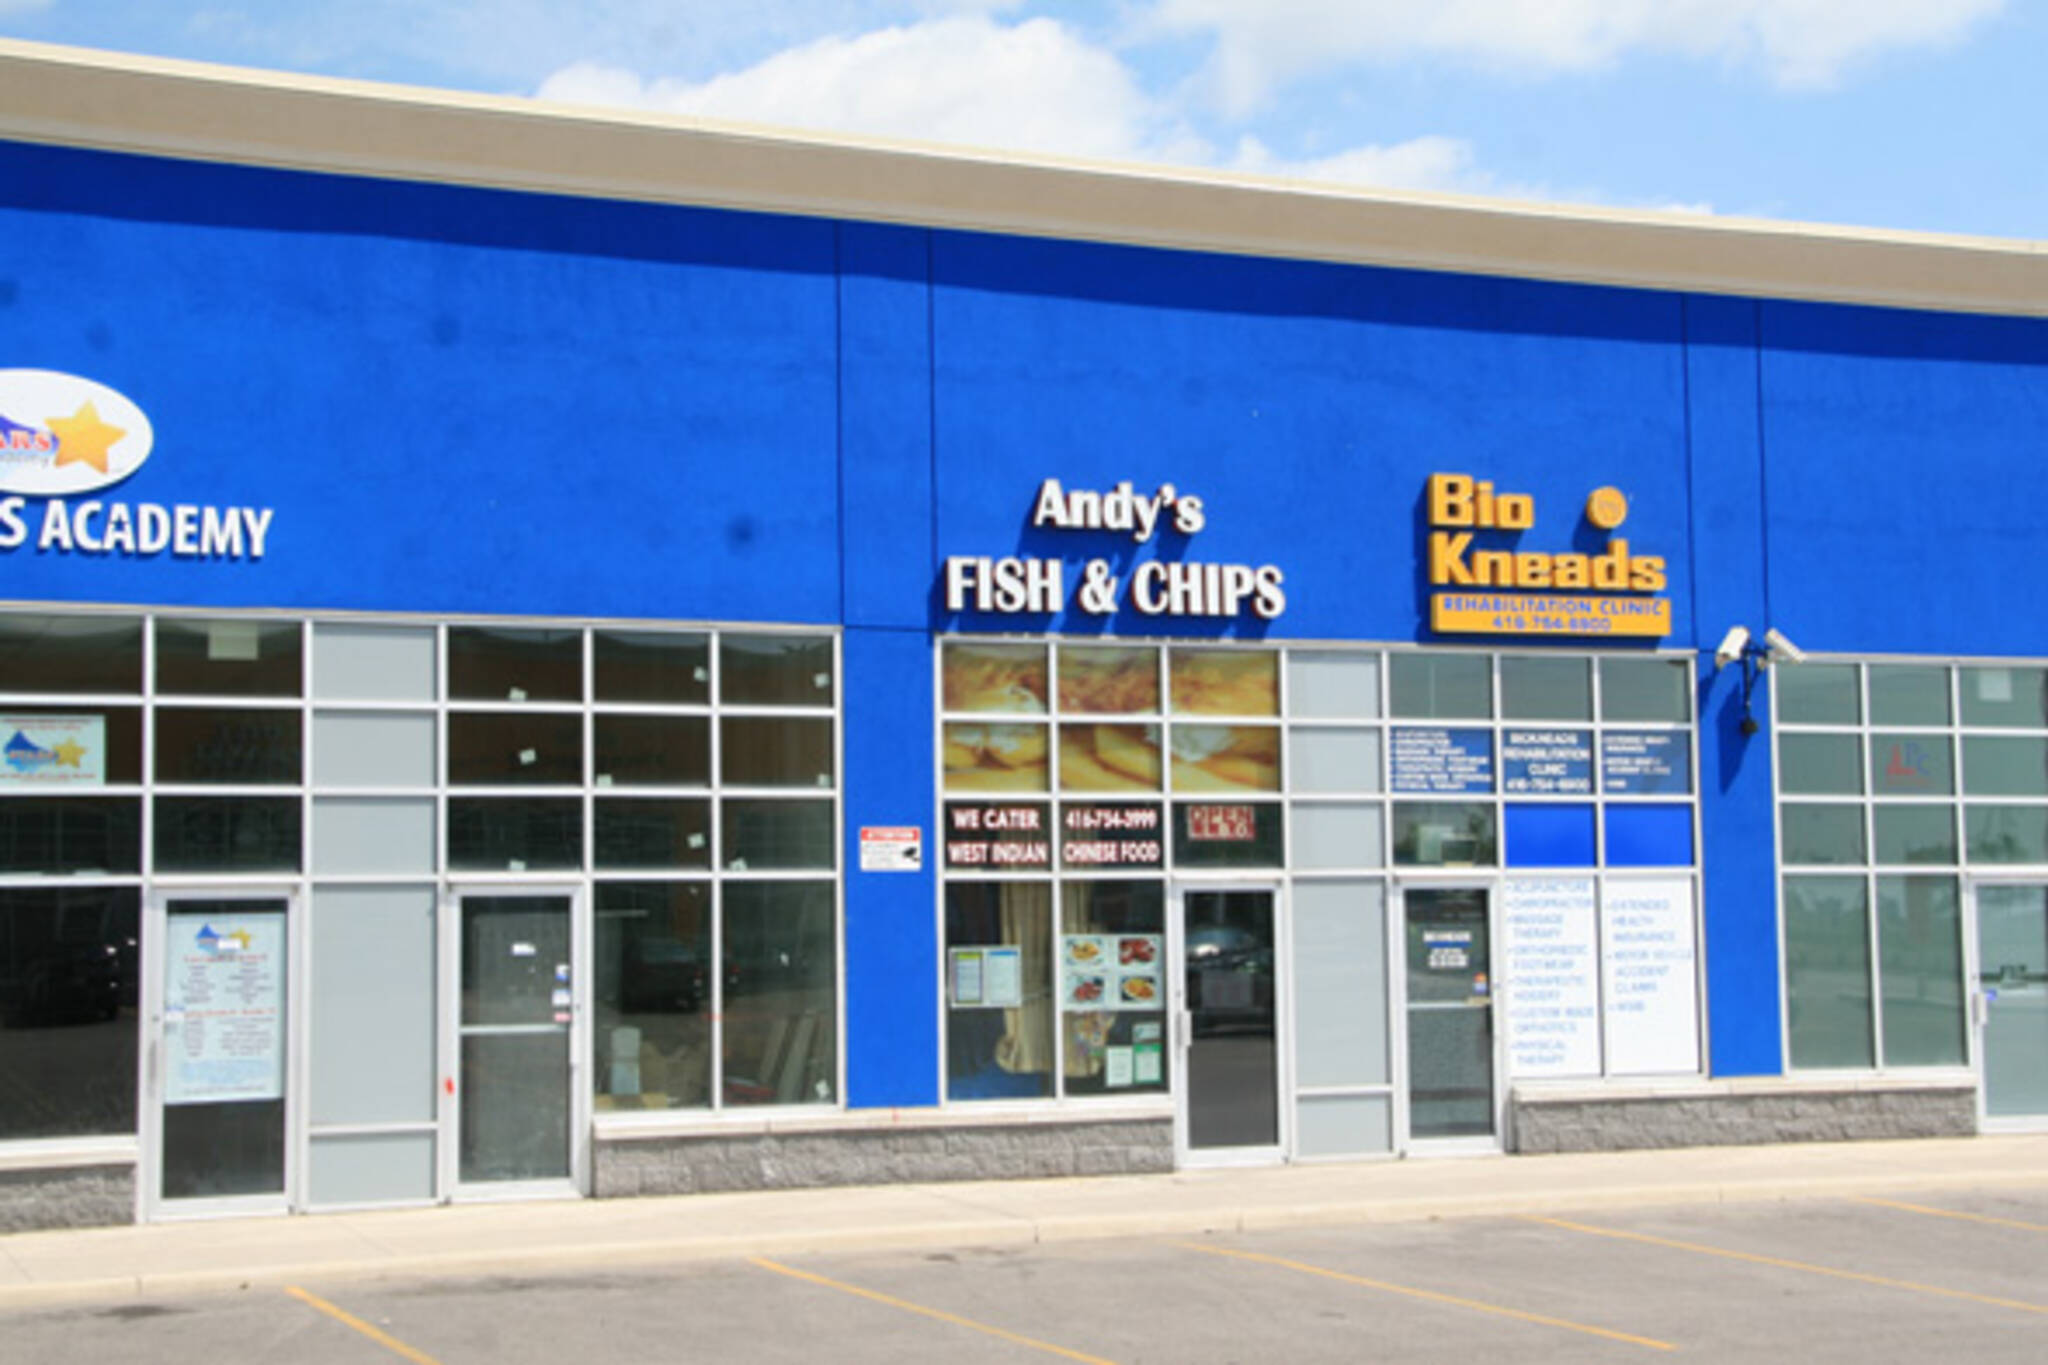 Andys Fish and Chips Toronto